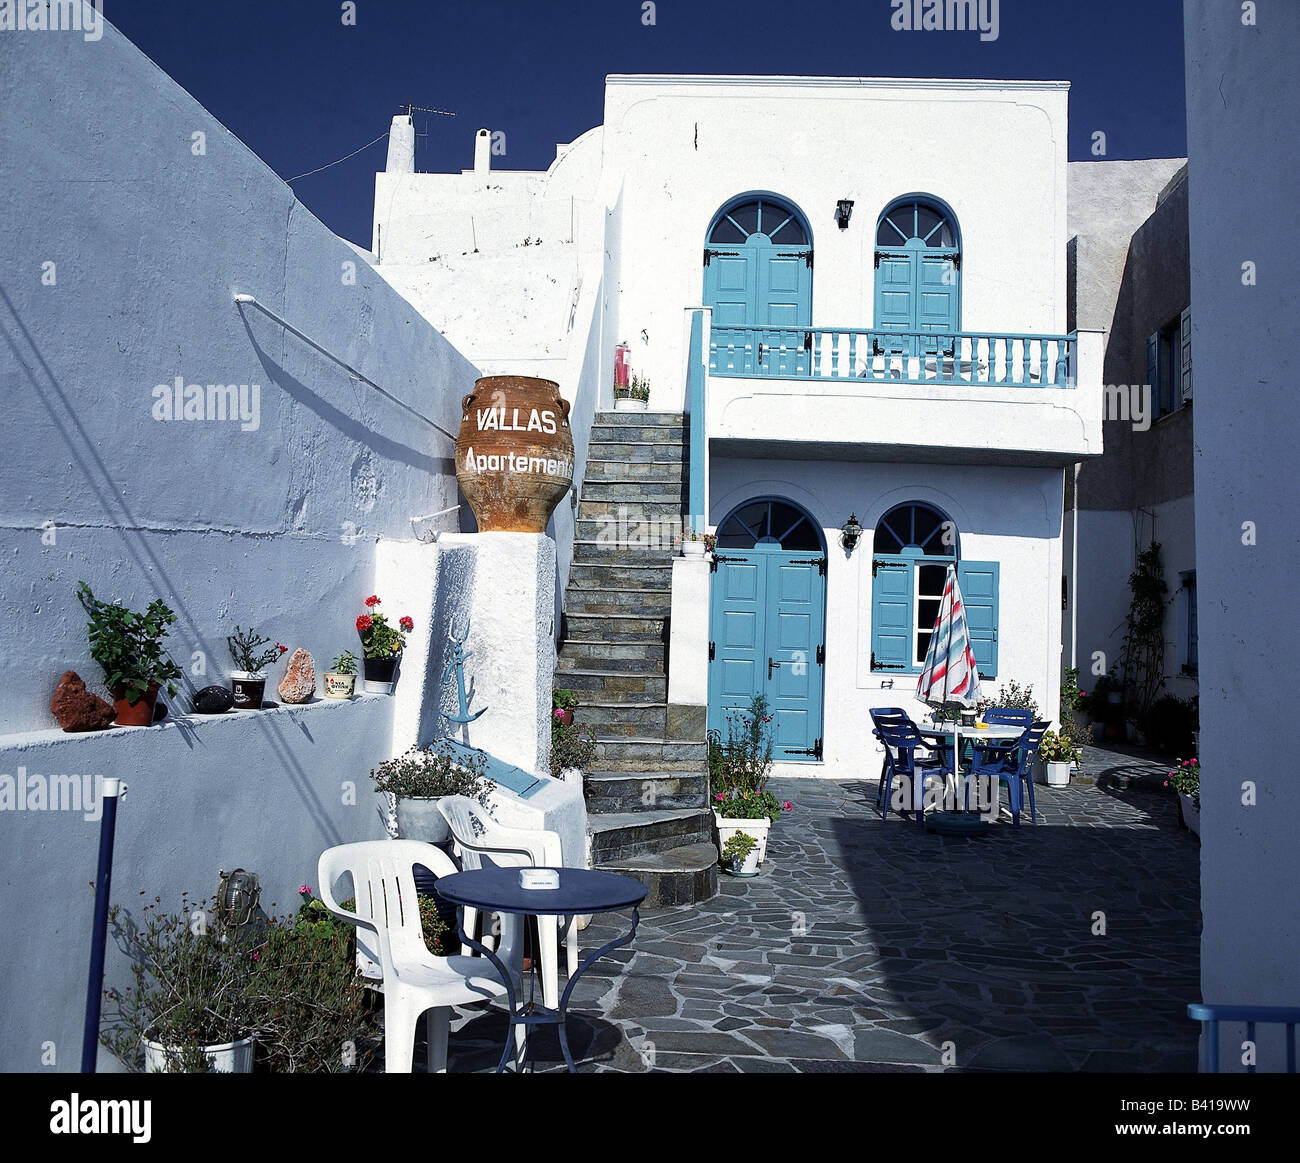 geography / travel, Greece, Cyclades, Santorini, Ia (Oia), holiday pension, exterior view, thera, court, idyll, - Stock Image